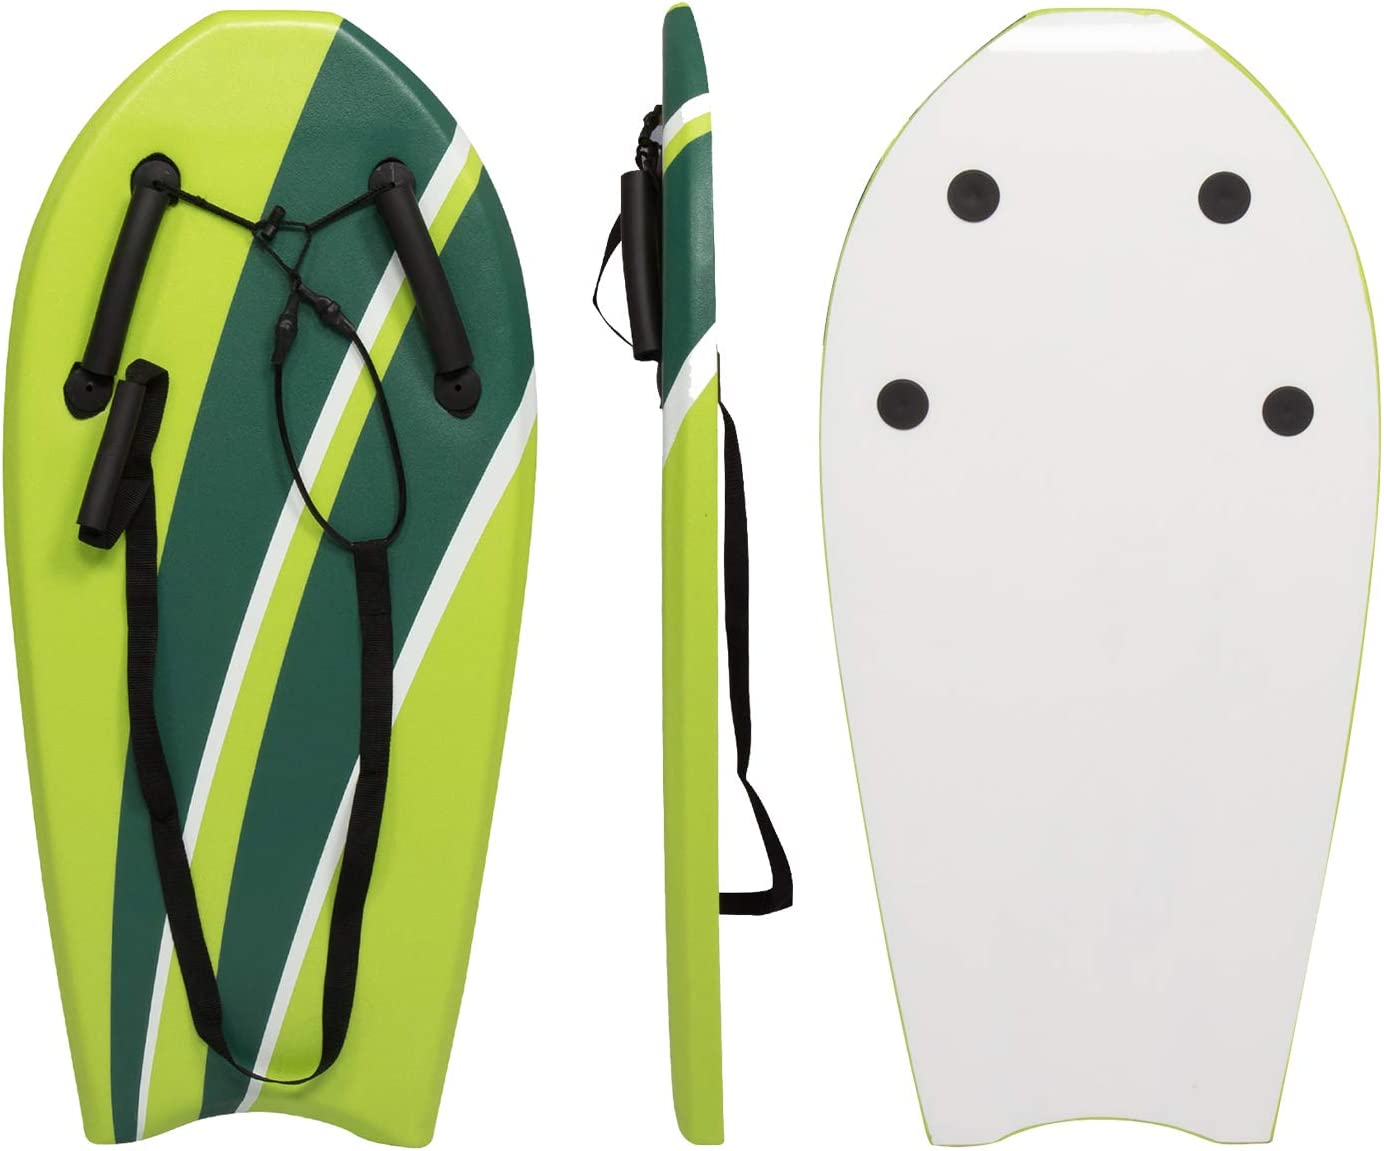 """Peachtree Press Inc. Bodyboard with Grips 37"""" Hand Hold Body Board Lightweight Surfboard Slick Bottom for Beginners Kids and Adults Sea Beach River"""